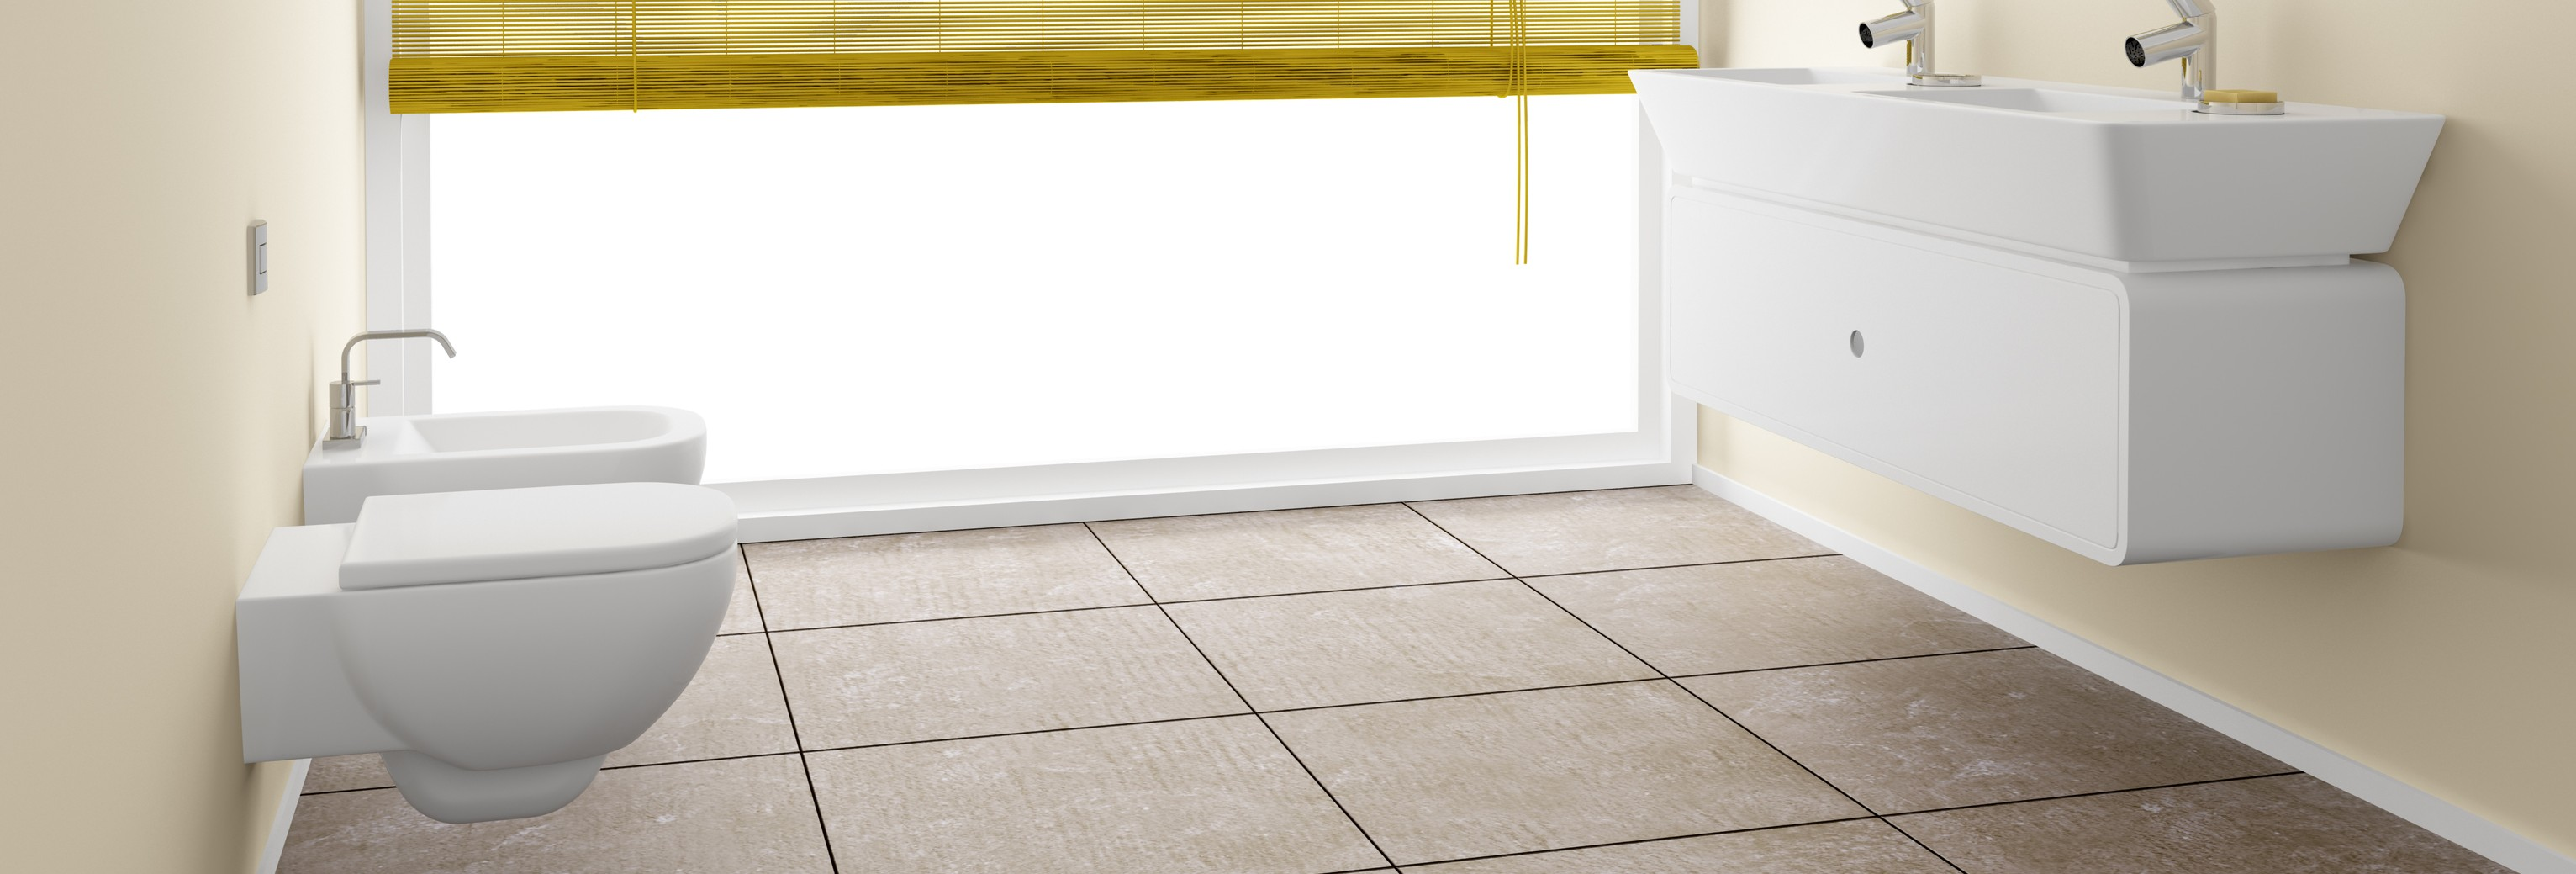 Non Harmful Ways to Clean Bathroom Tile Grout Heavens Best Carpet